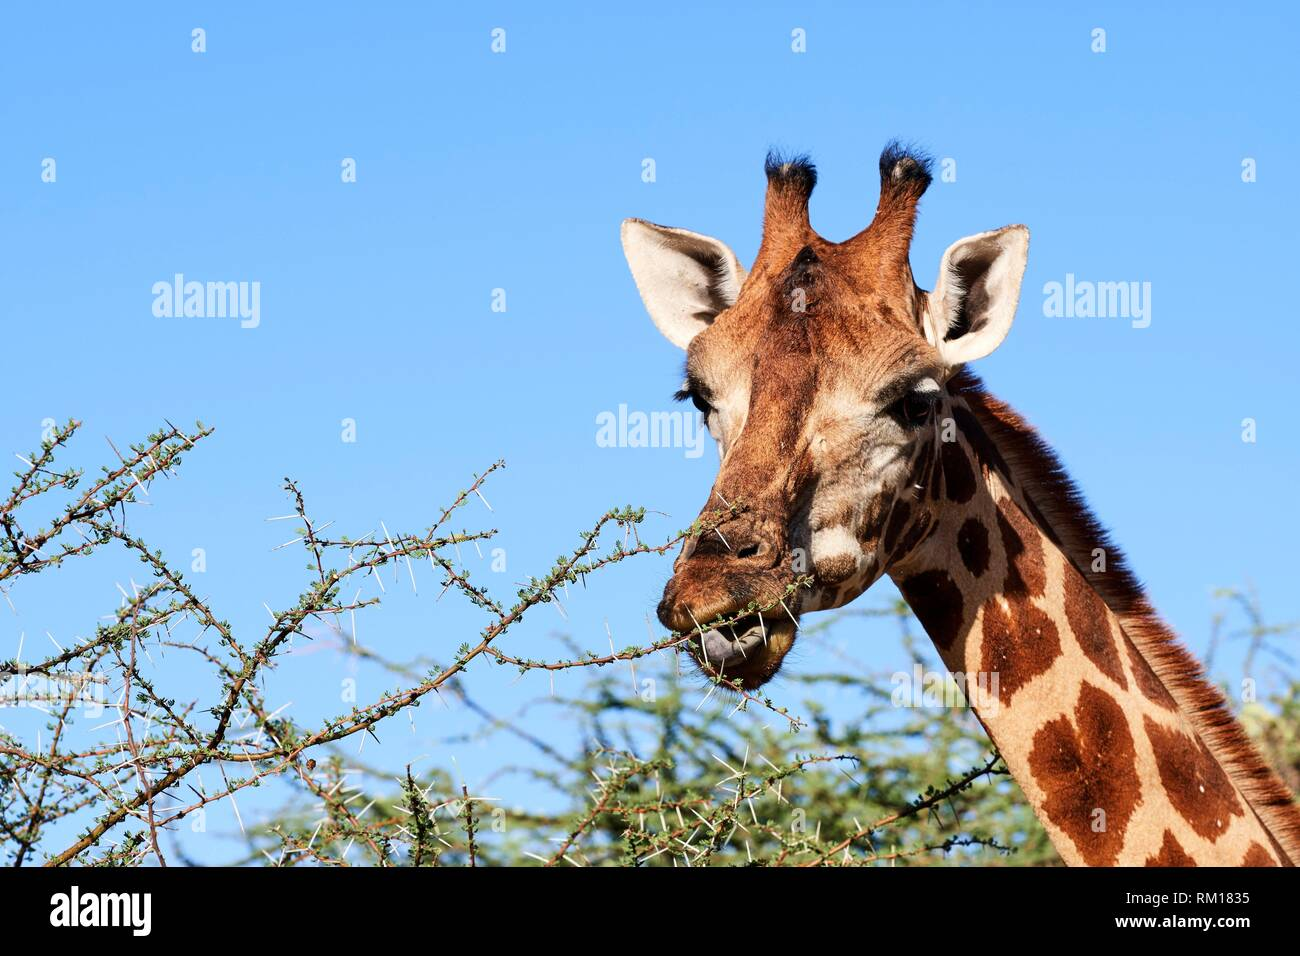 Rothschild giraffe (Giraffa camelopardalis rothschildi) fedding on acacia leaves, Ruko Conservancy island, Lake Baringo, Kenya, Africa. - Stock Image